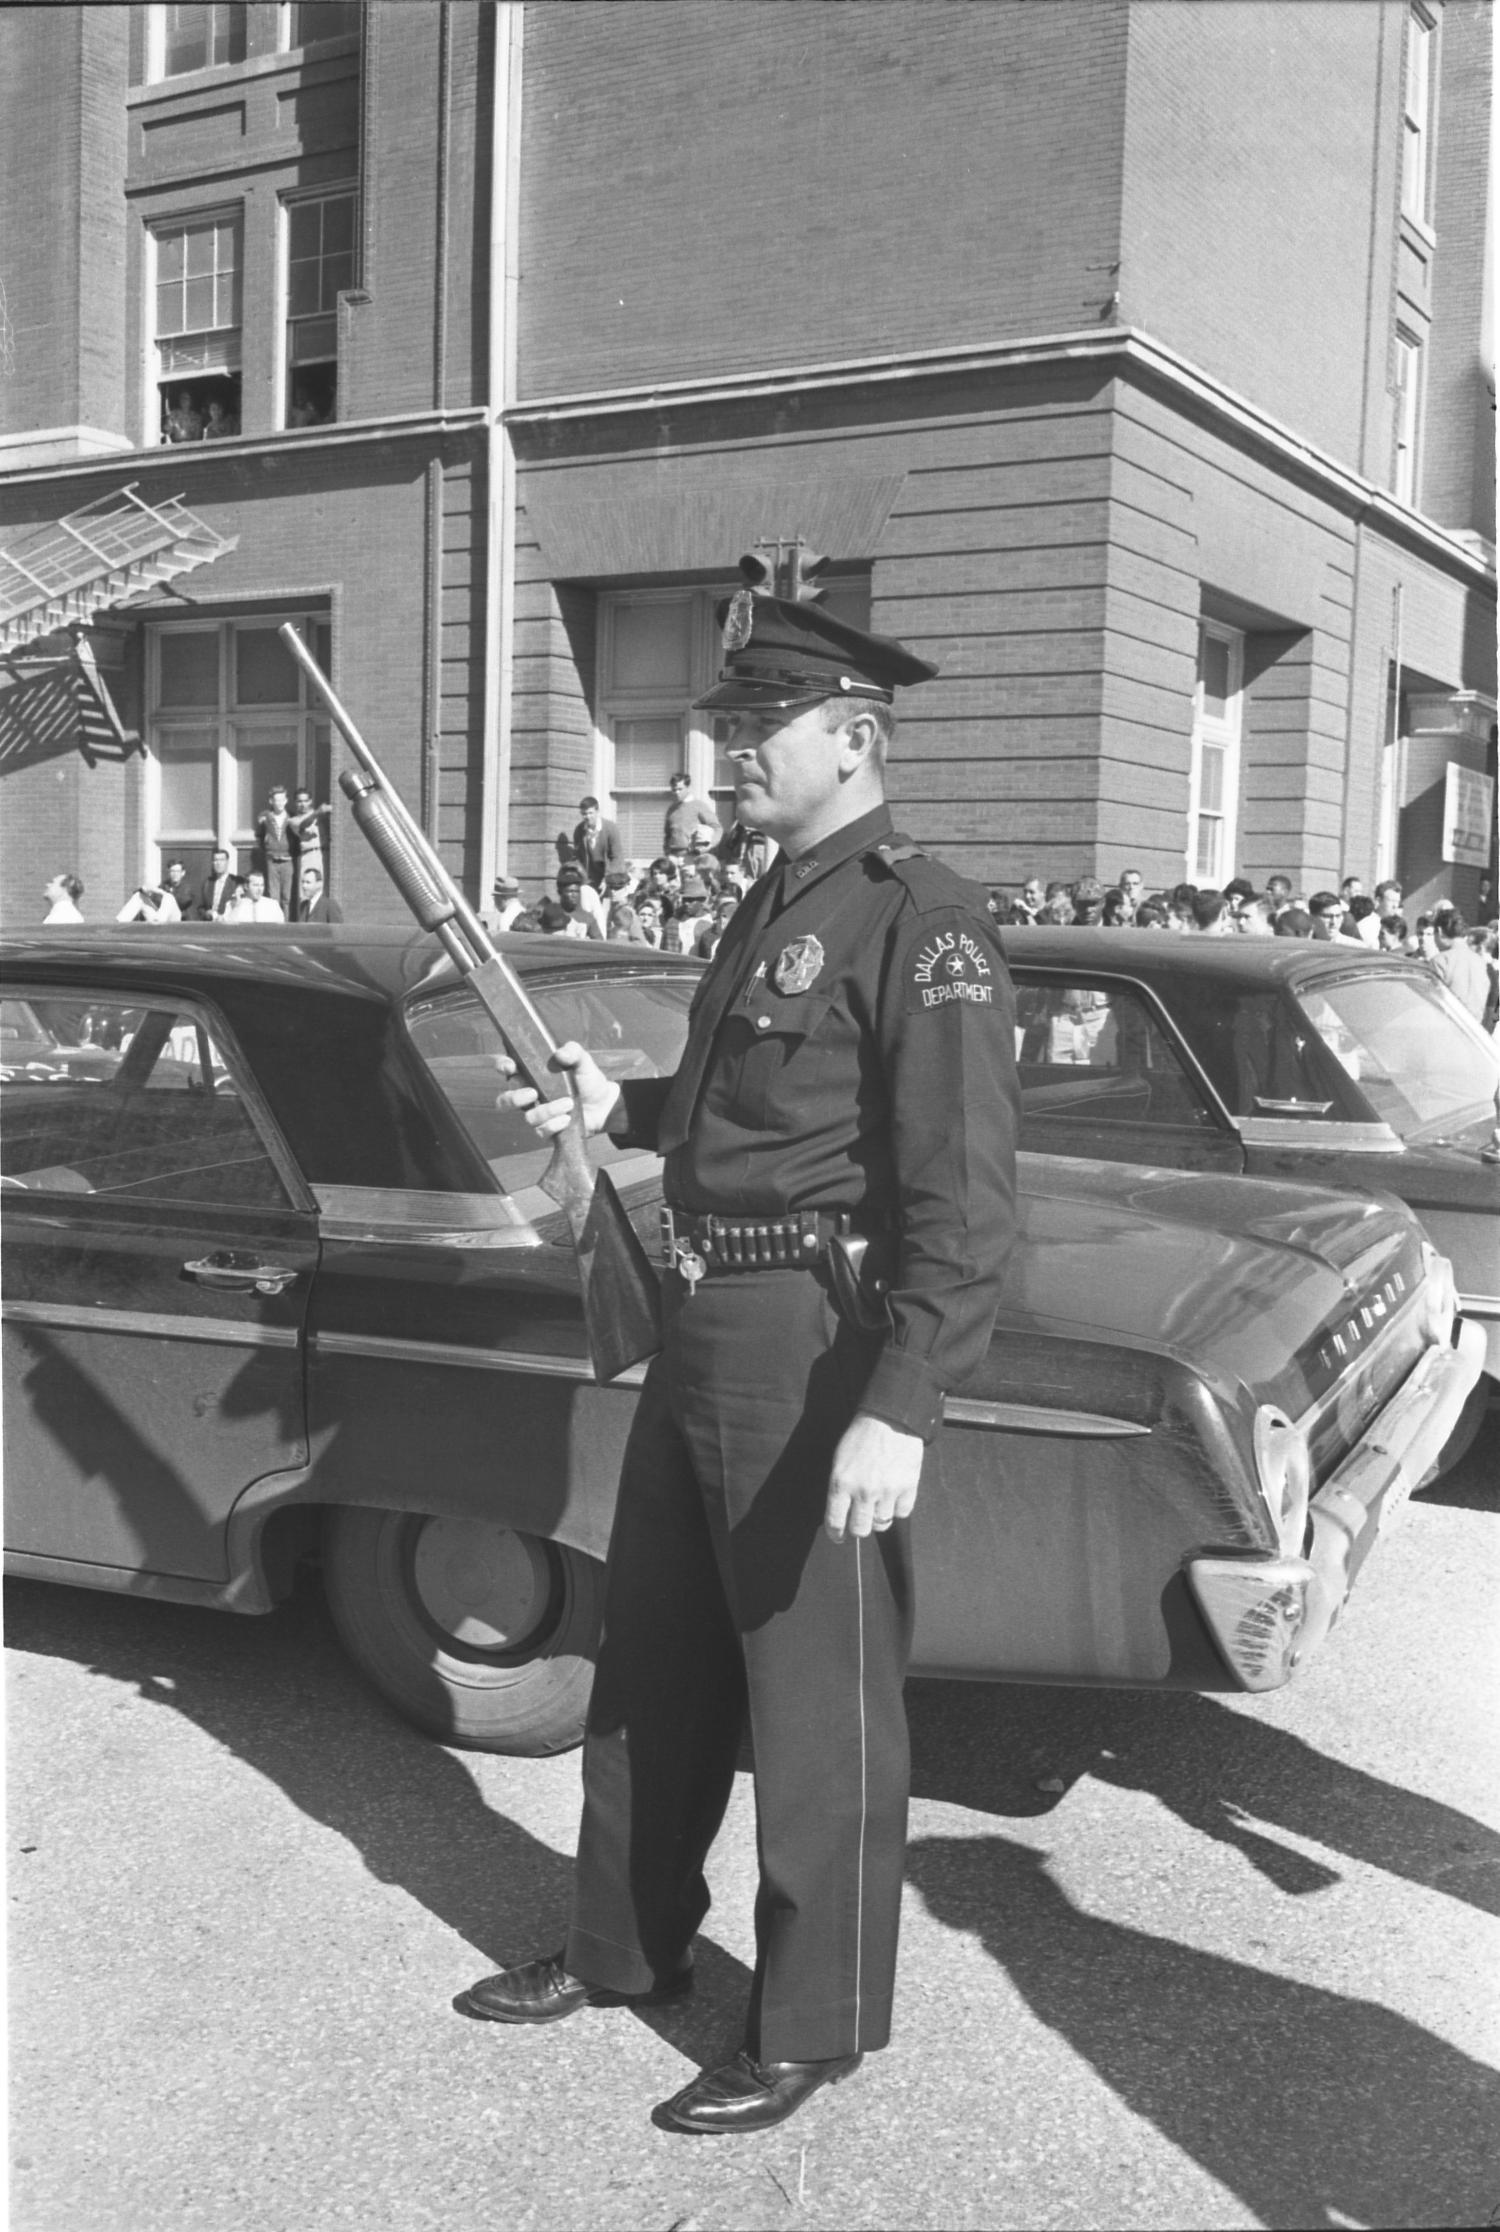 A Dallas Police officer outside the Texas School Book